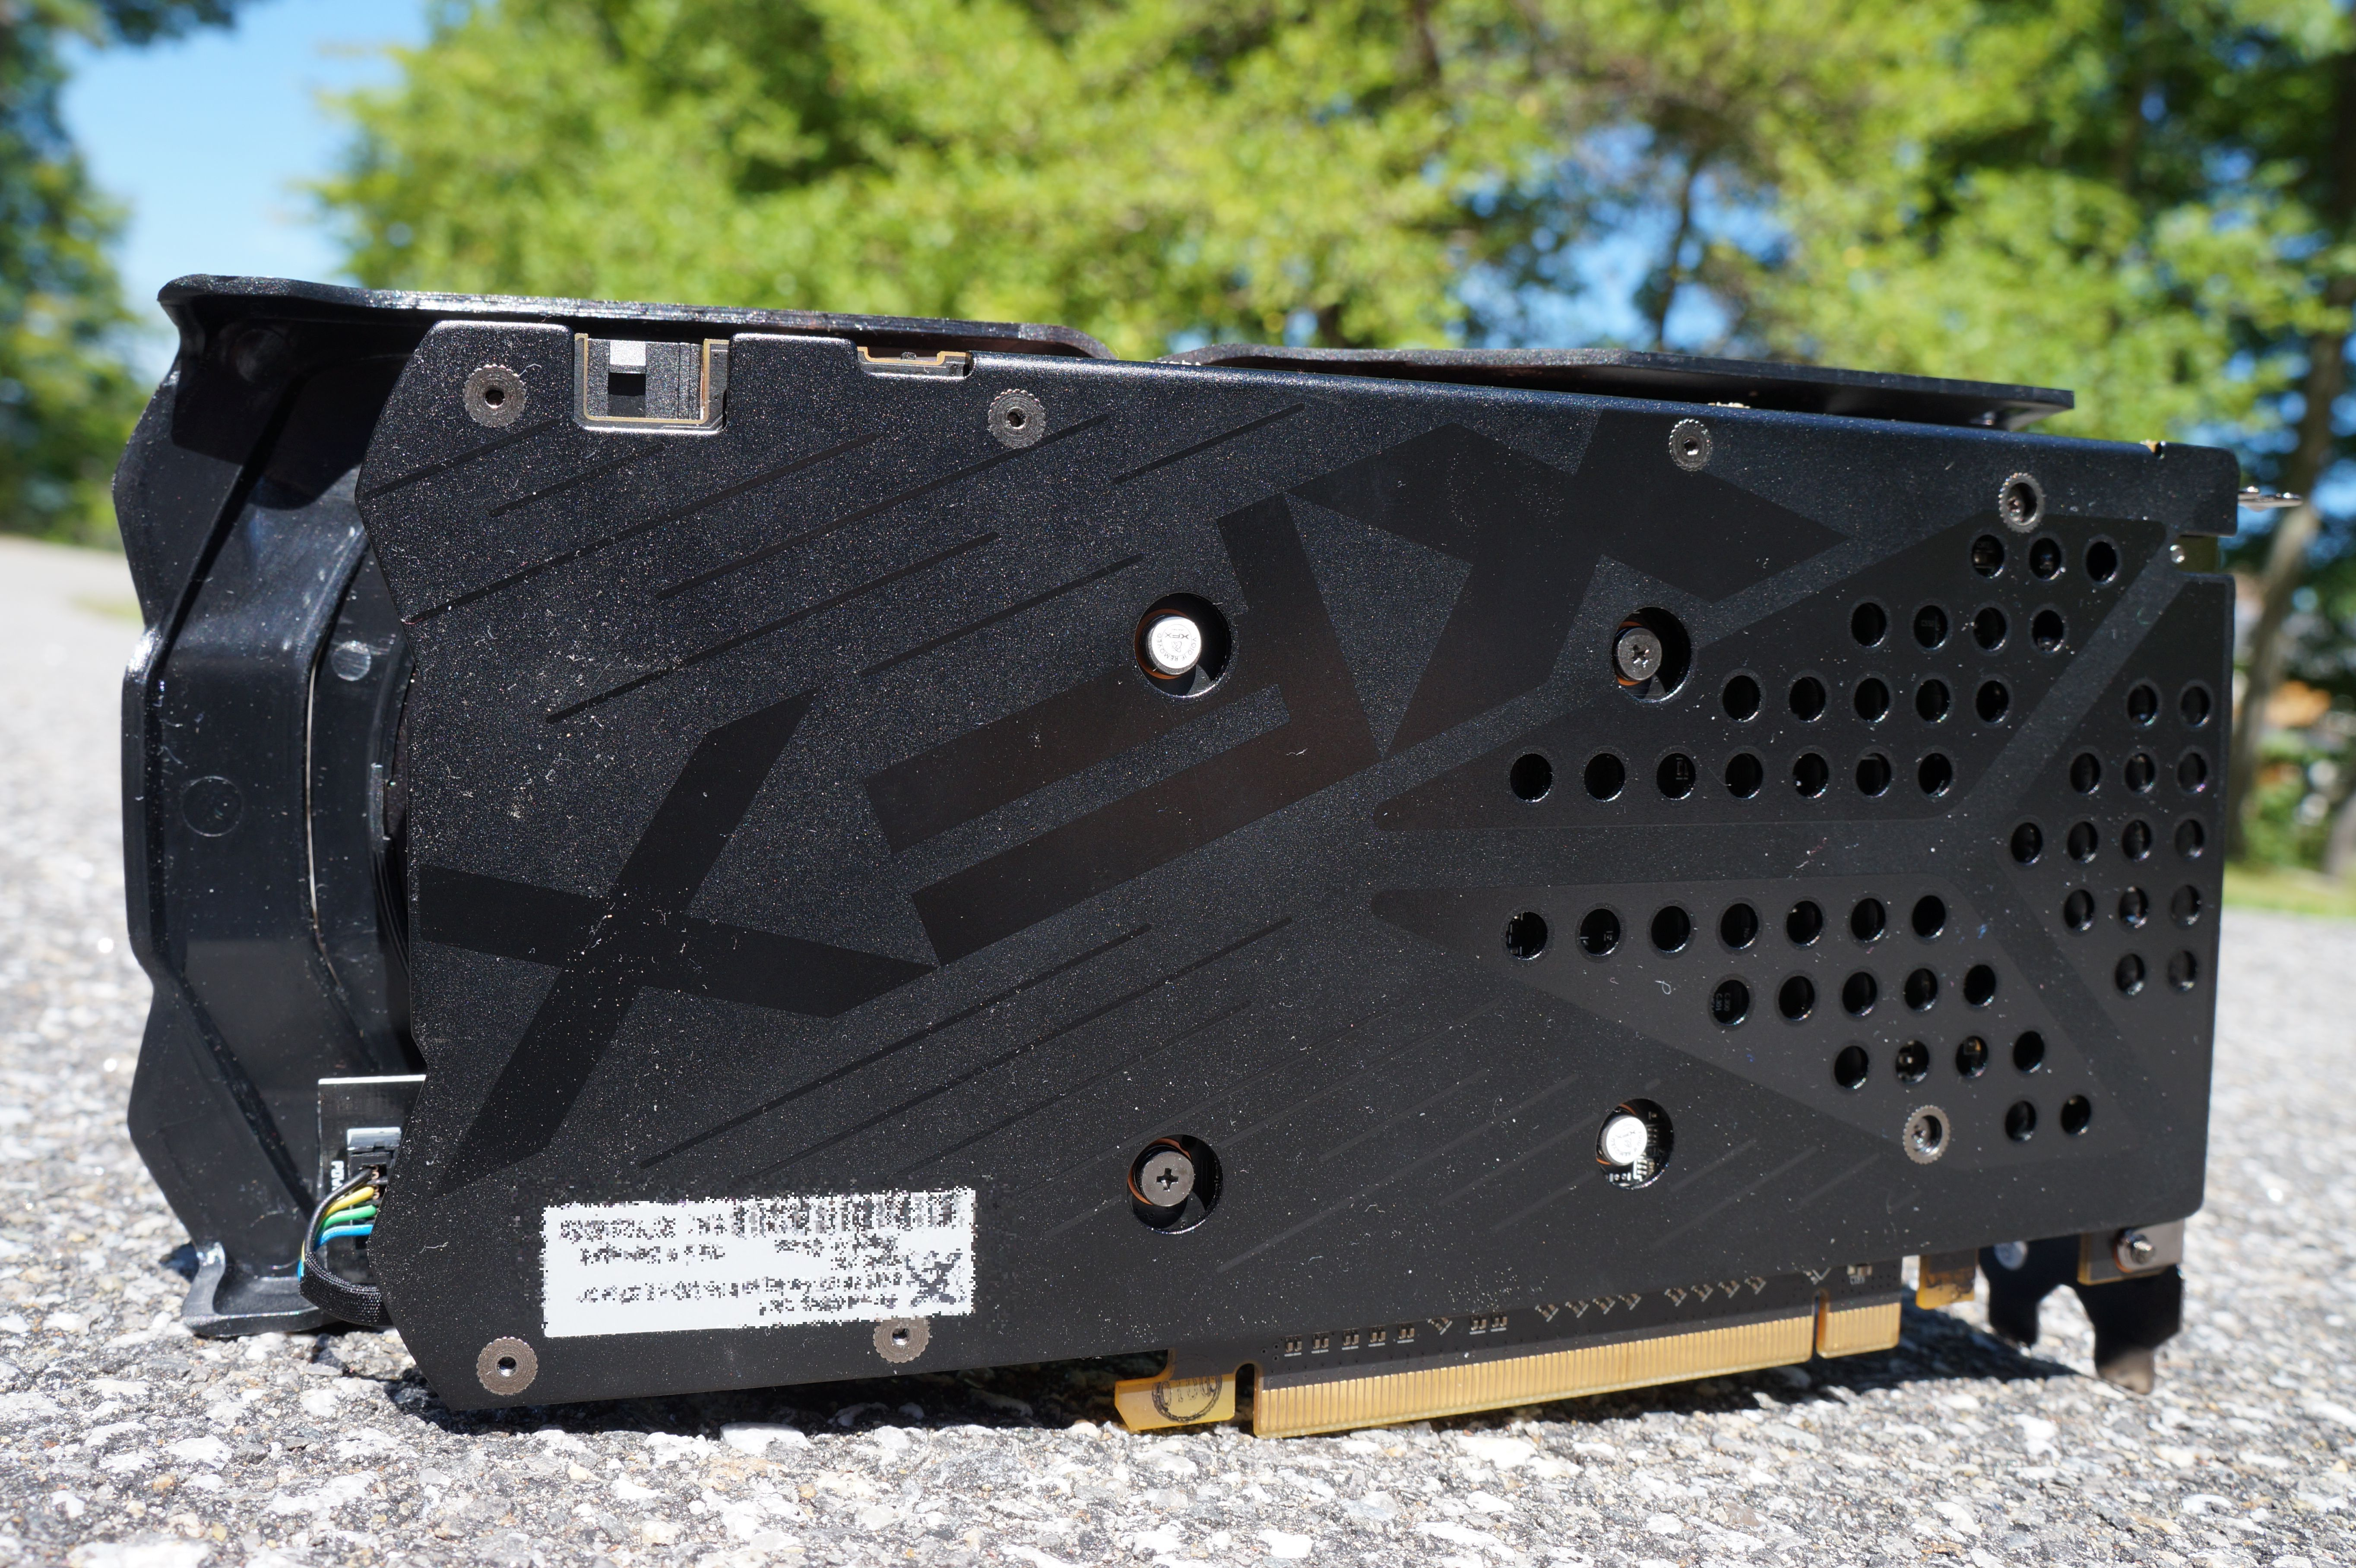 AMD unleashes Radeon RX470 graphics card in United Kingdom for under £165